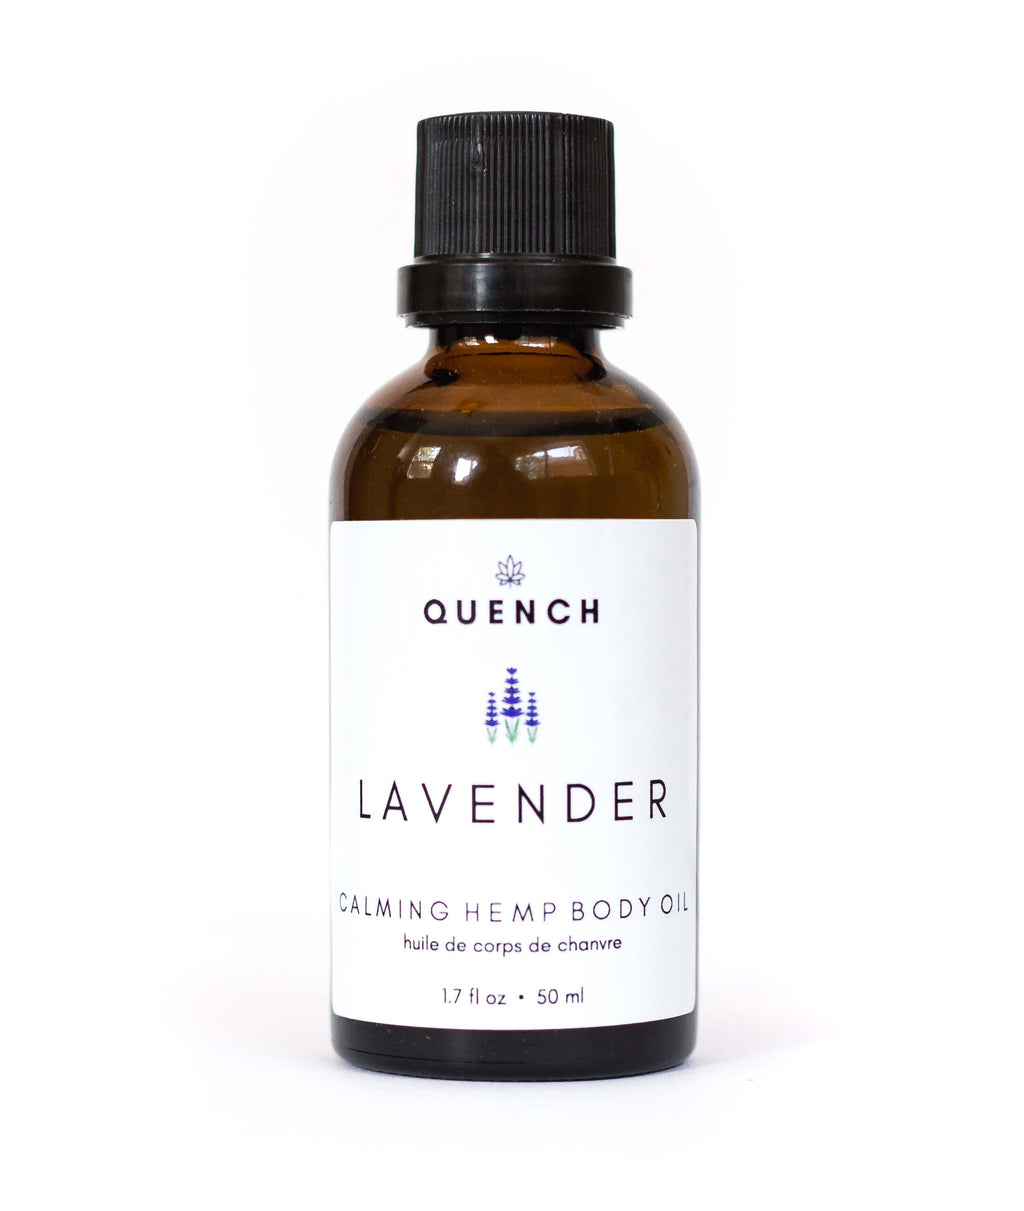 LAVENDER HEMP BODY OIL